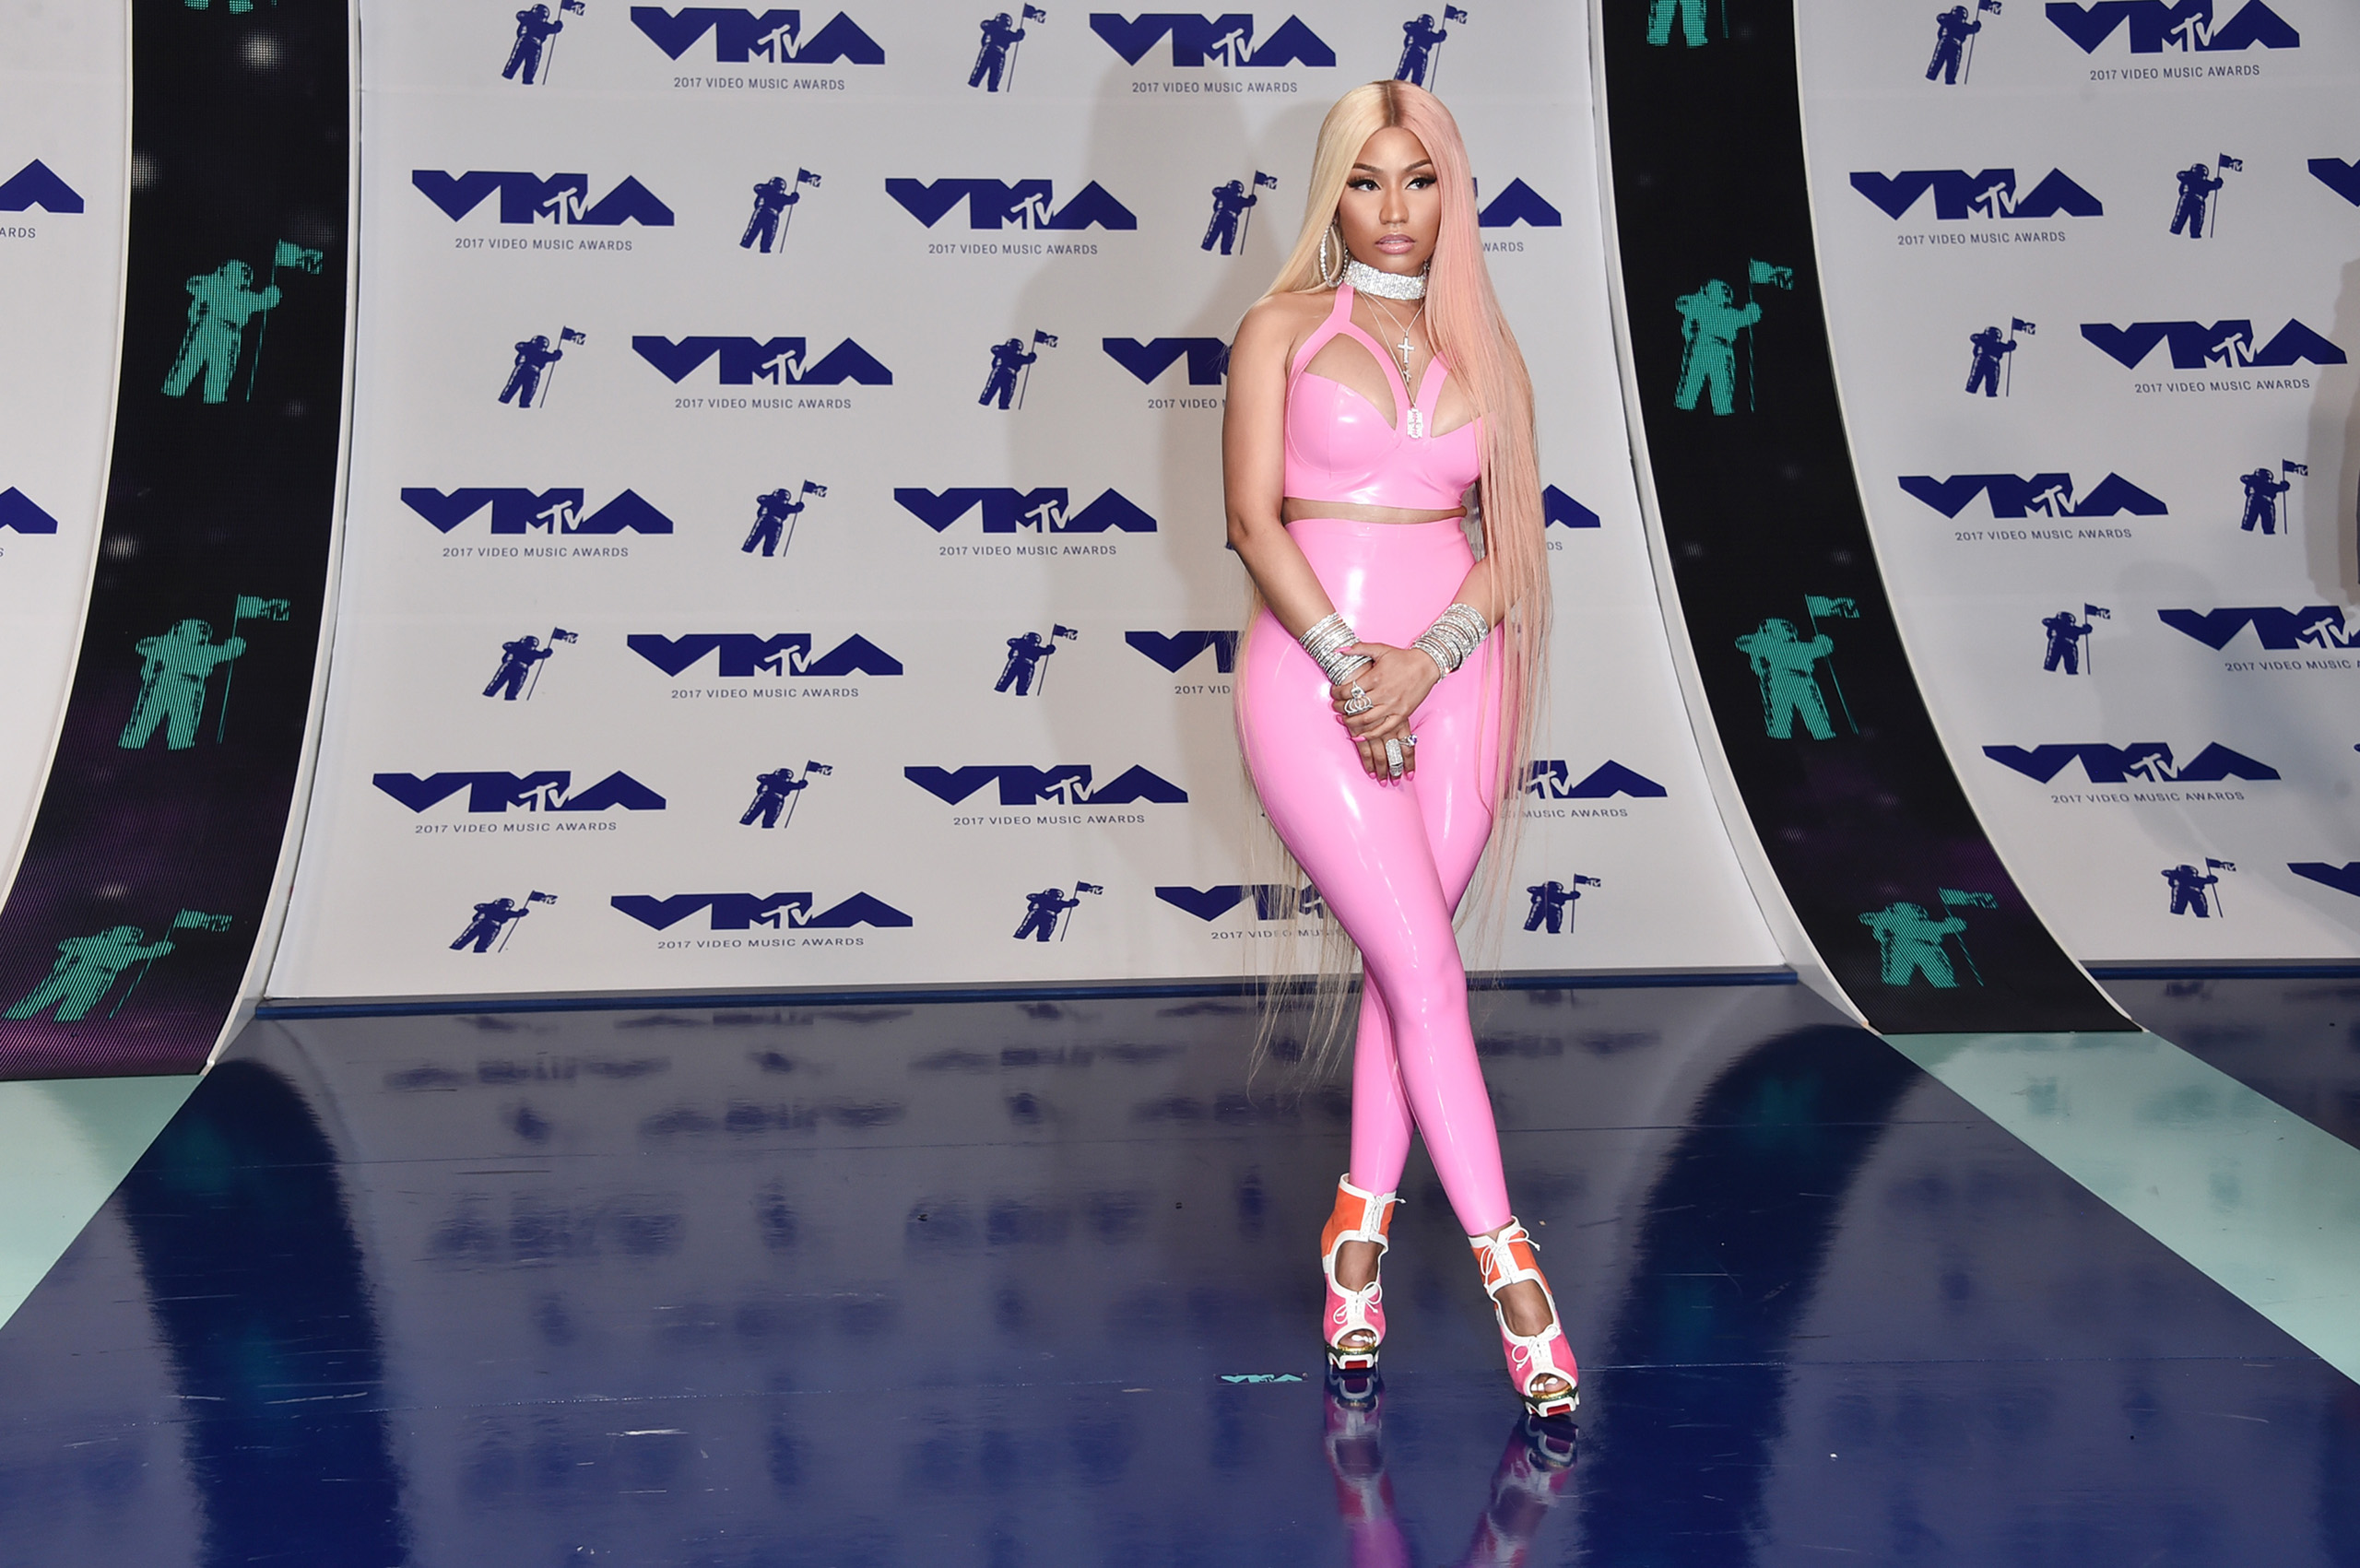 Nicki Minaj attends the 2017 MTV Video Music Awards at The Forum on August 27, 2017 in Inglewood, California.